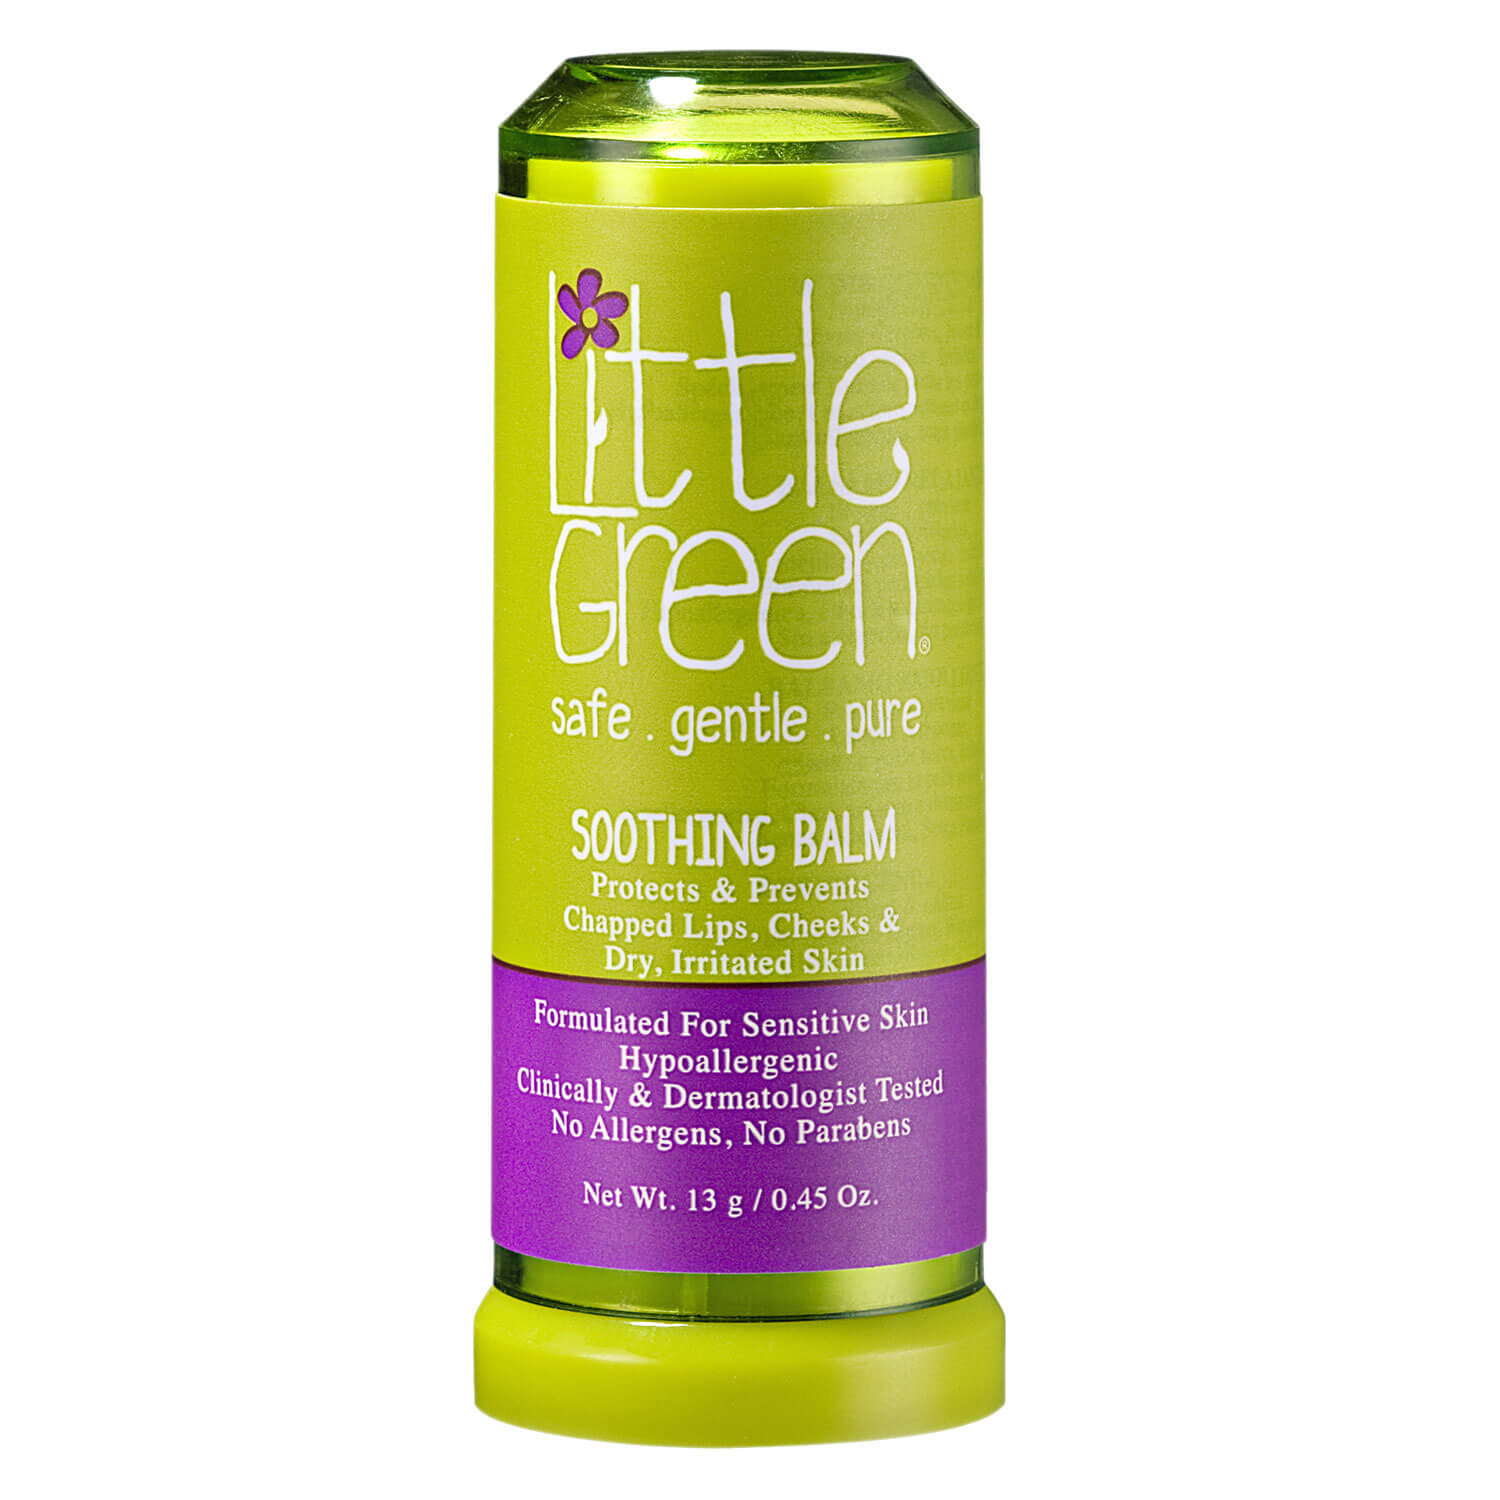 Little Green Baby - Soothing Balm - 13g